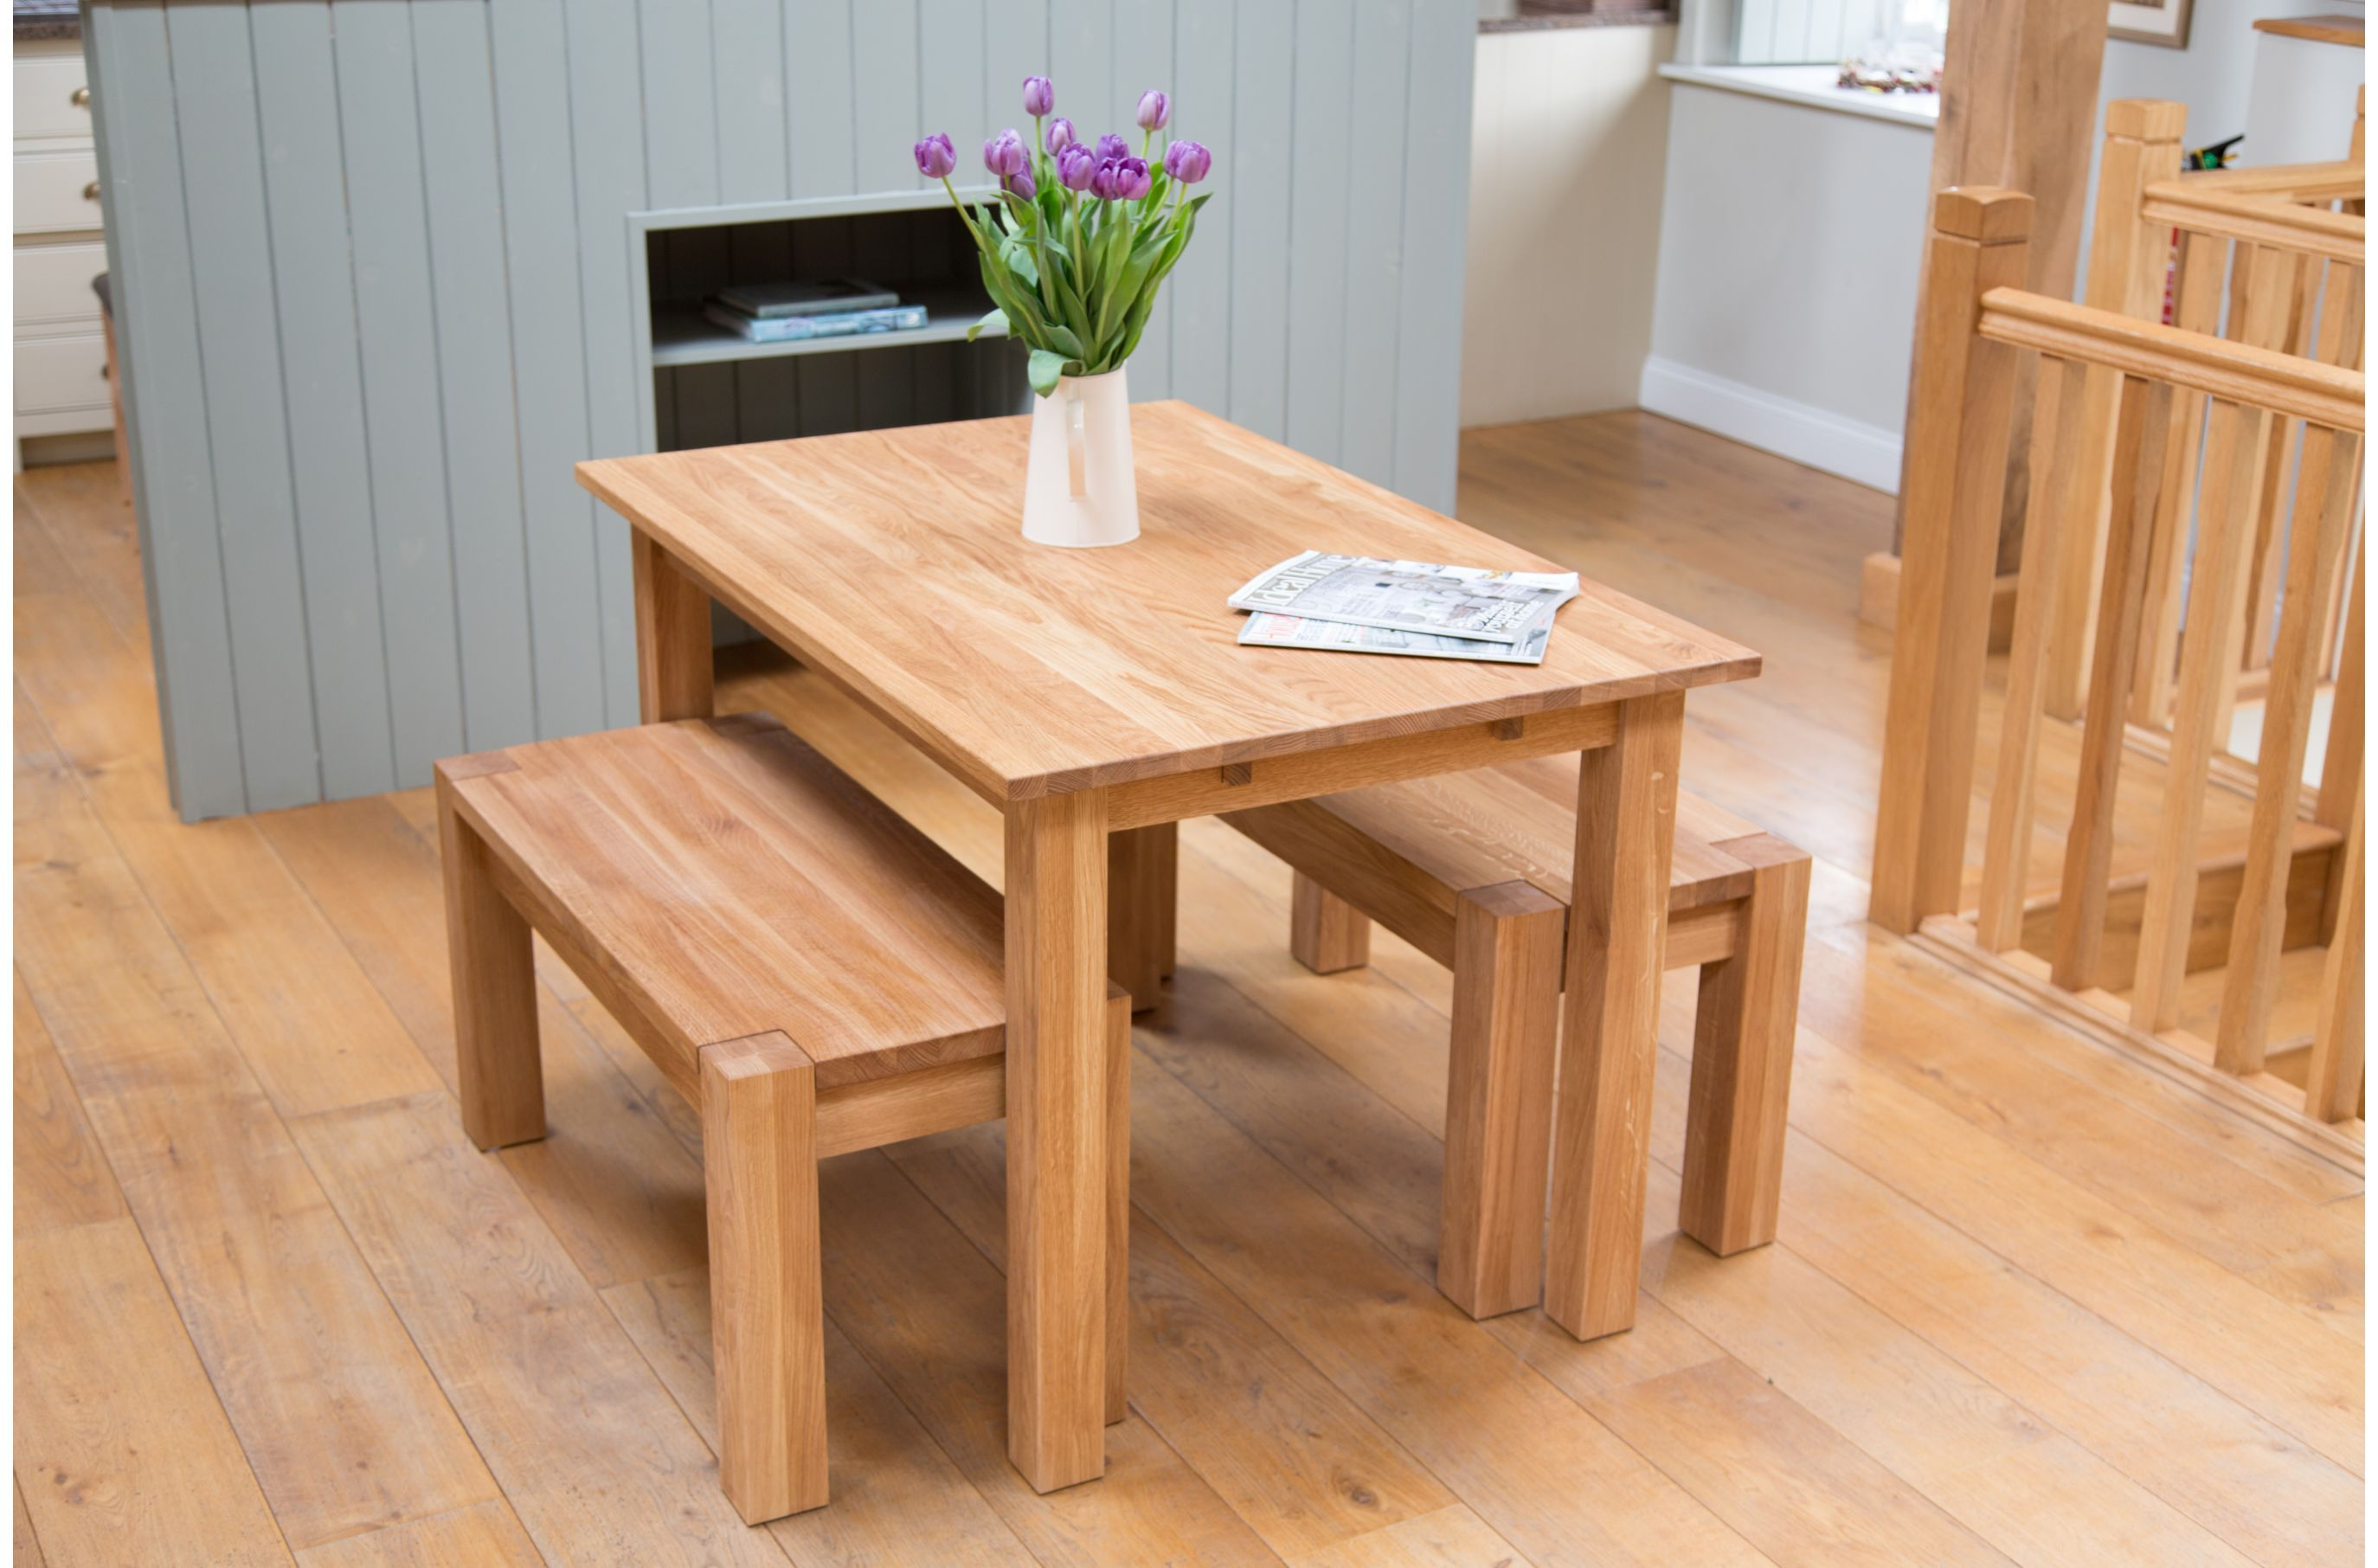 Small kitchen table and bench set from TopFurniture.co.uk | Tables ...